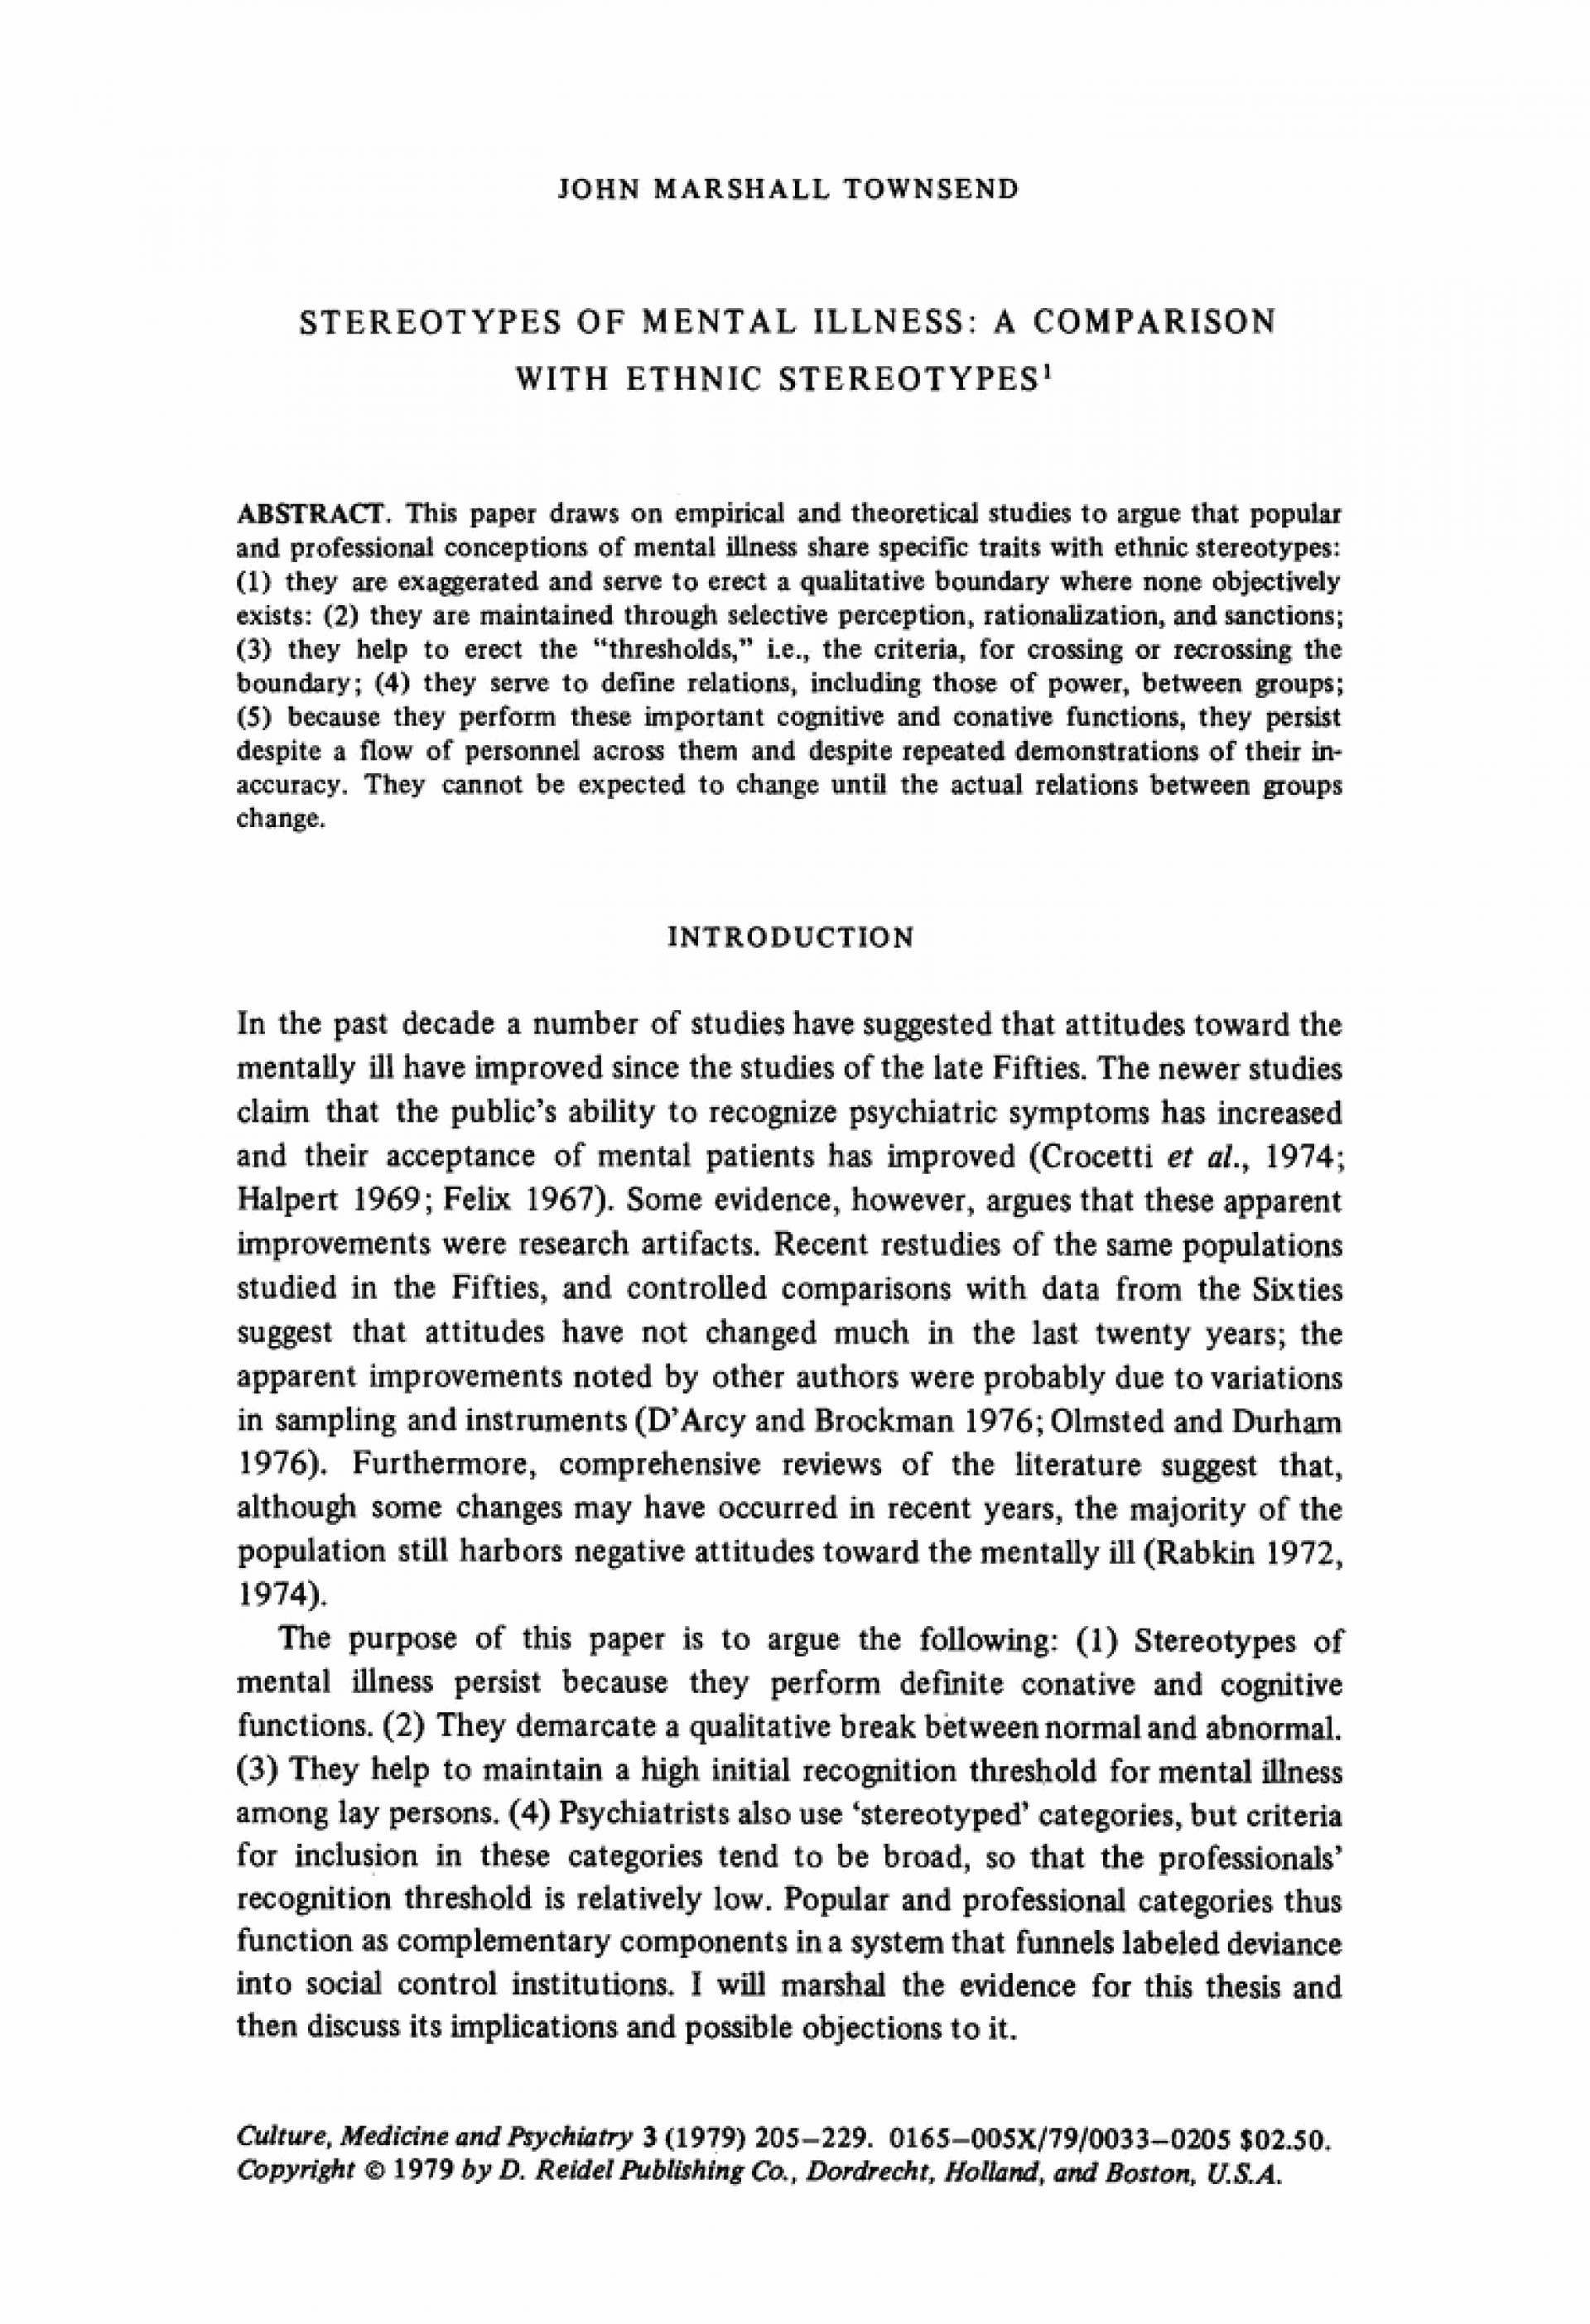 001 Stereotypes Of Mental Illness Comparison With Ethnic Springer Stereotype Essay L Unique Hook Conclusion 1920